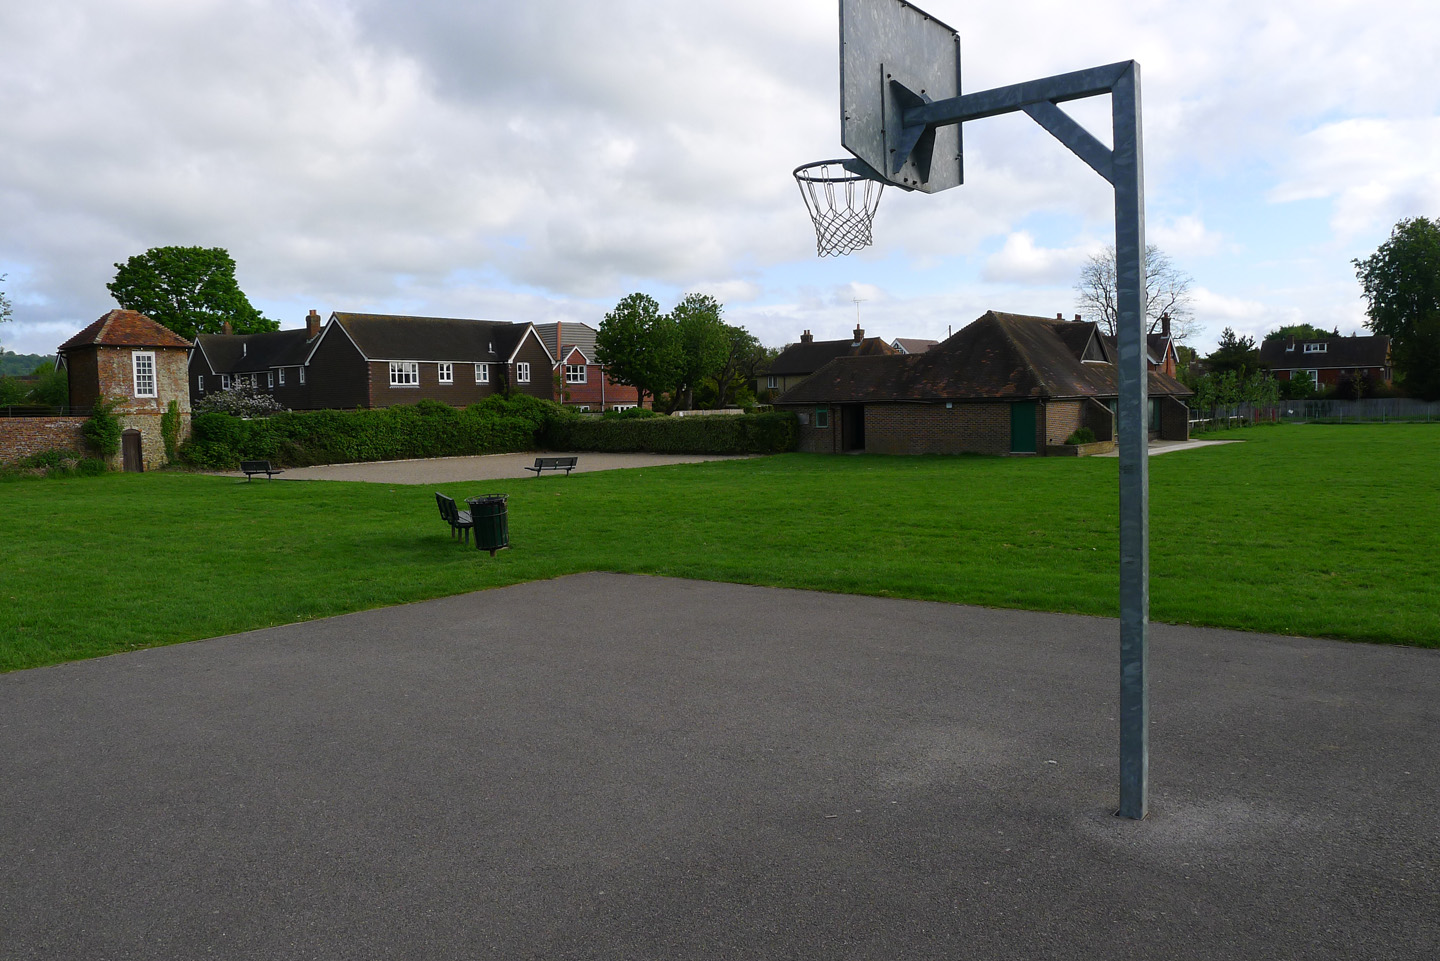 picture of basket ball hoop at the avenue green space